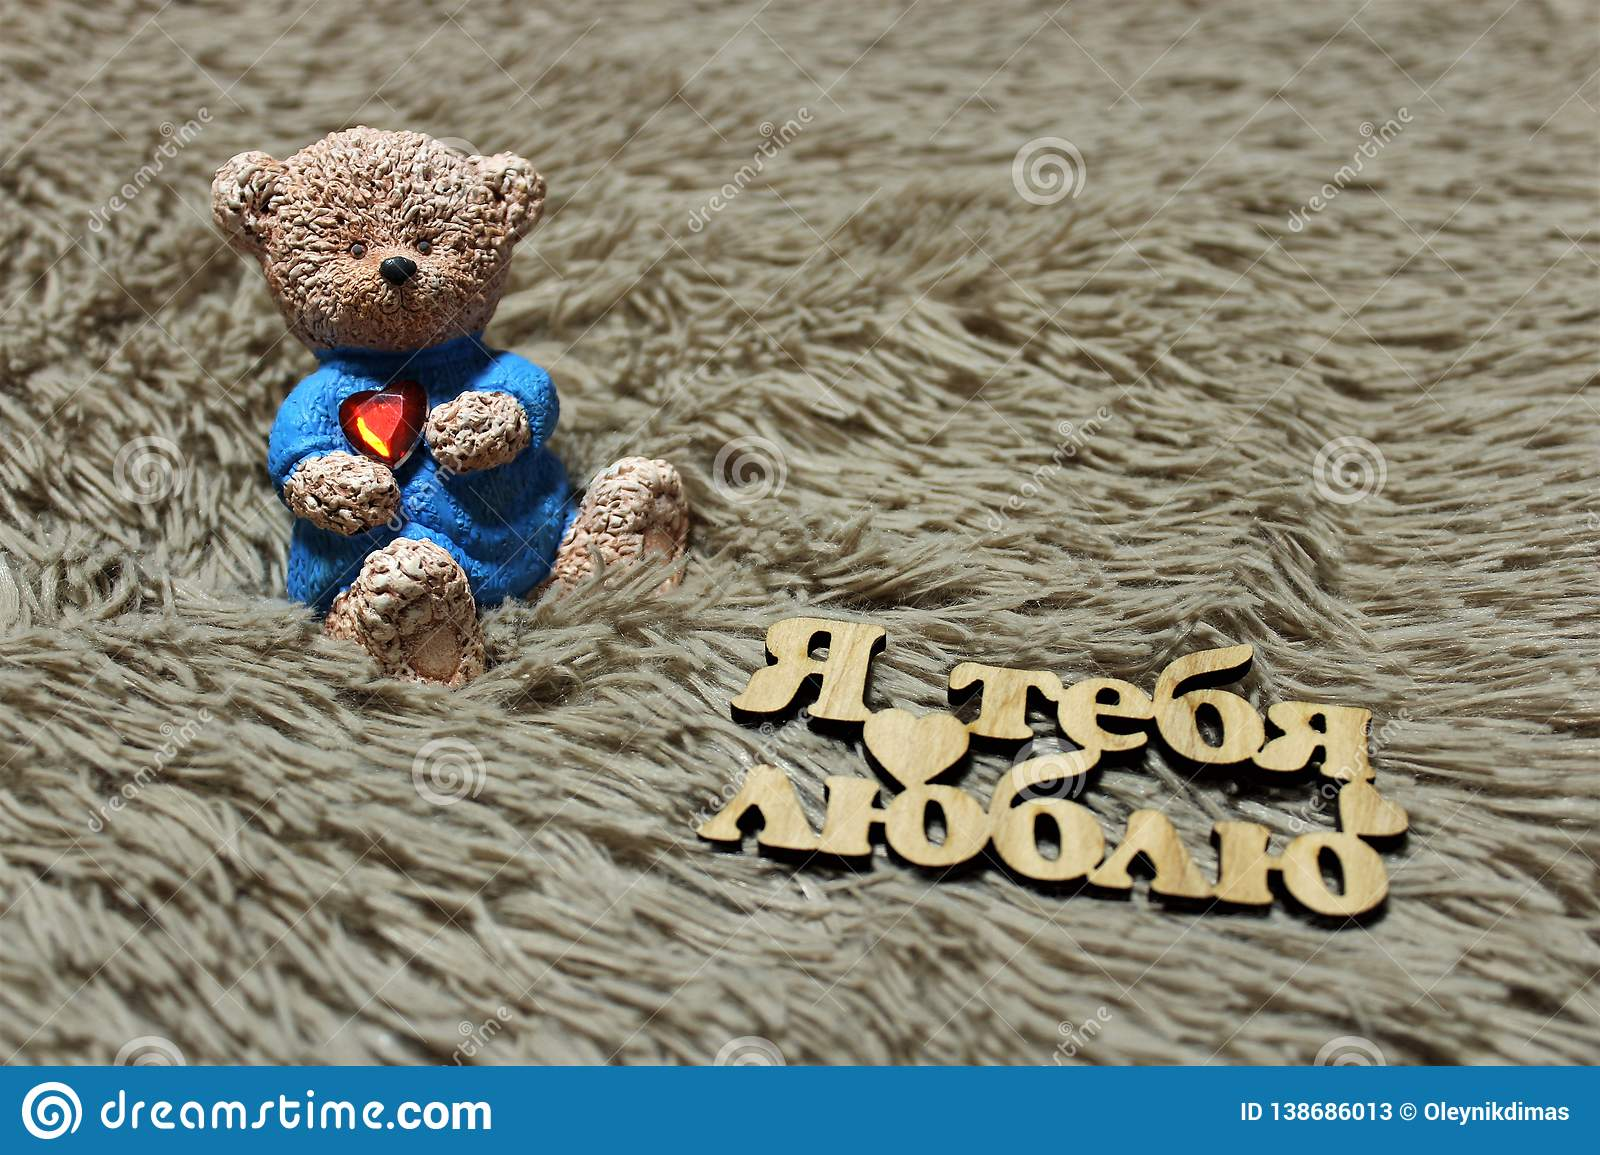 https://thumbs.dreamstime.com/z/declaration-love-valentines-day-teddy-bear-blue-sweater-red-heart-carved-wood-declaration-love-declaration-138686013.jpg